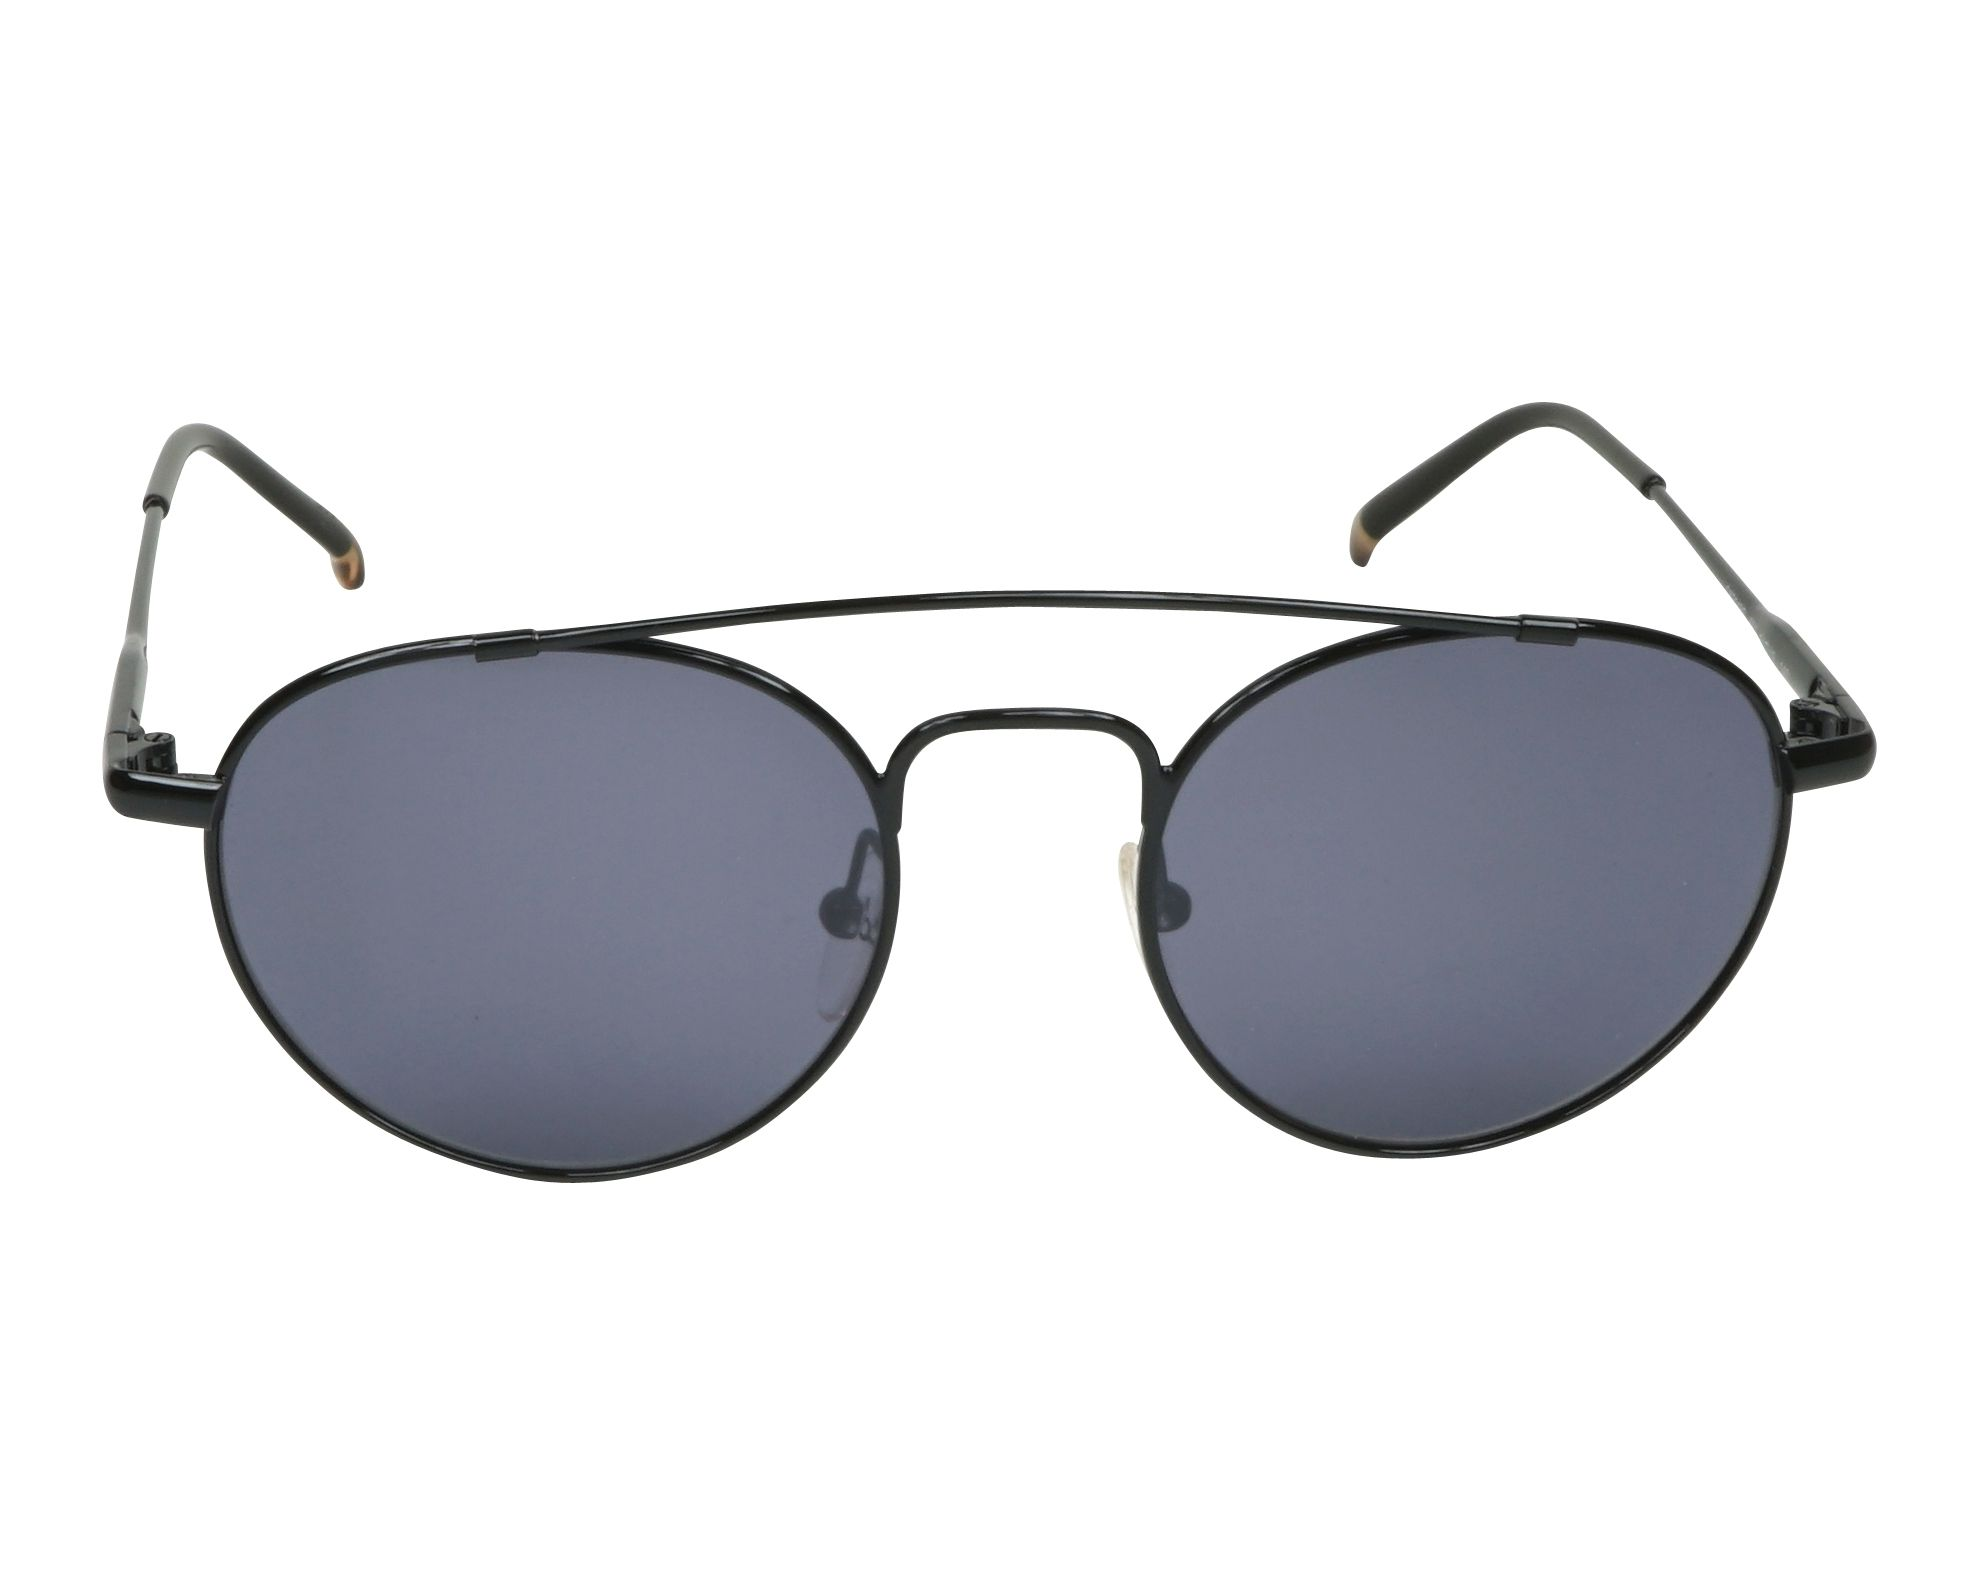 Sunglasses Calvin Klein CK-2148-S 001 51-19 Black front view